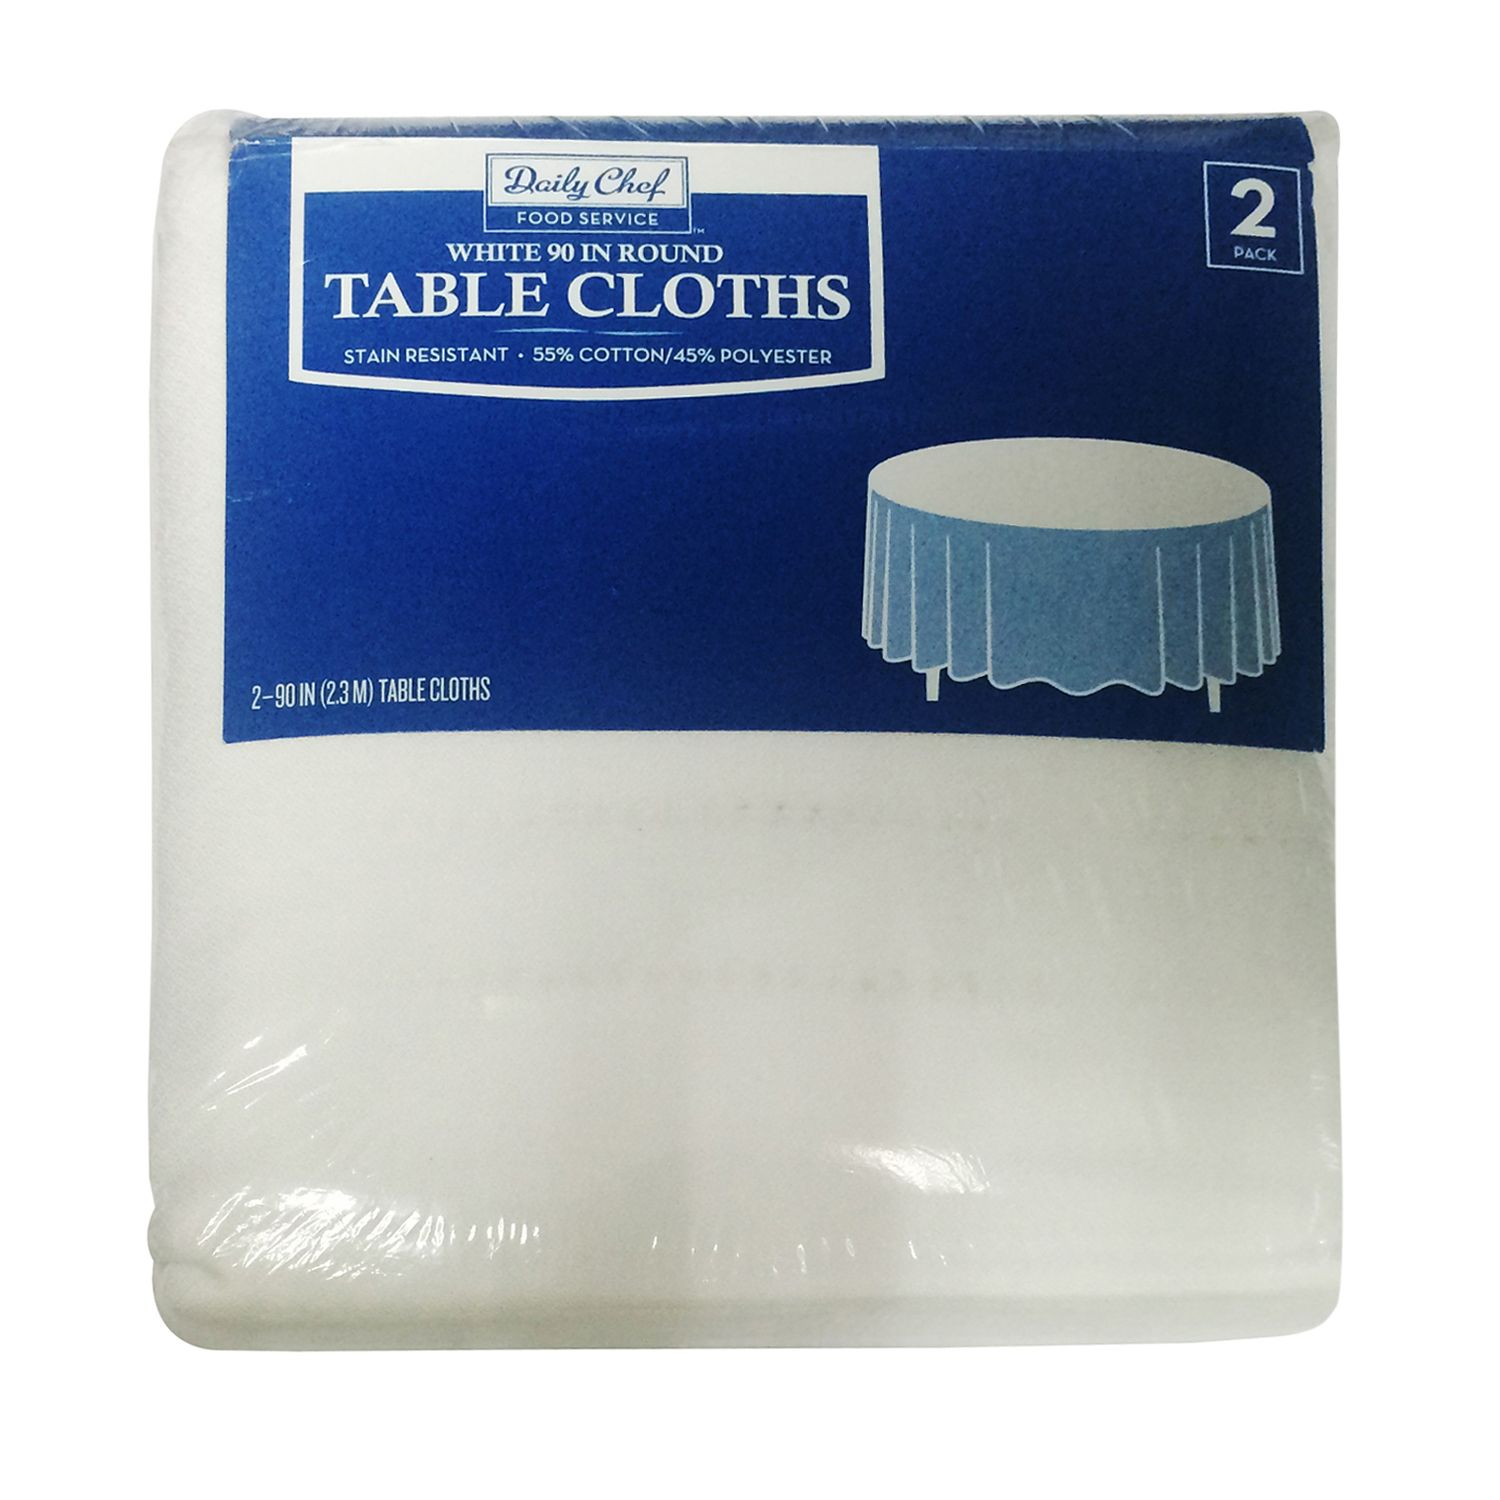 "Bakers & Chef's Bakers & Chefs Round Tablecloth - White - 90"" - 2 pk. at Sears.com"